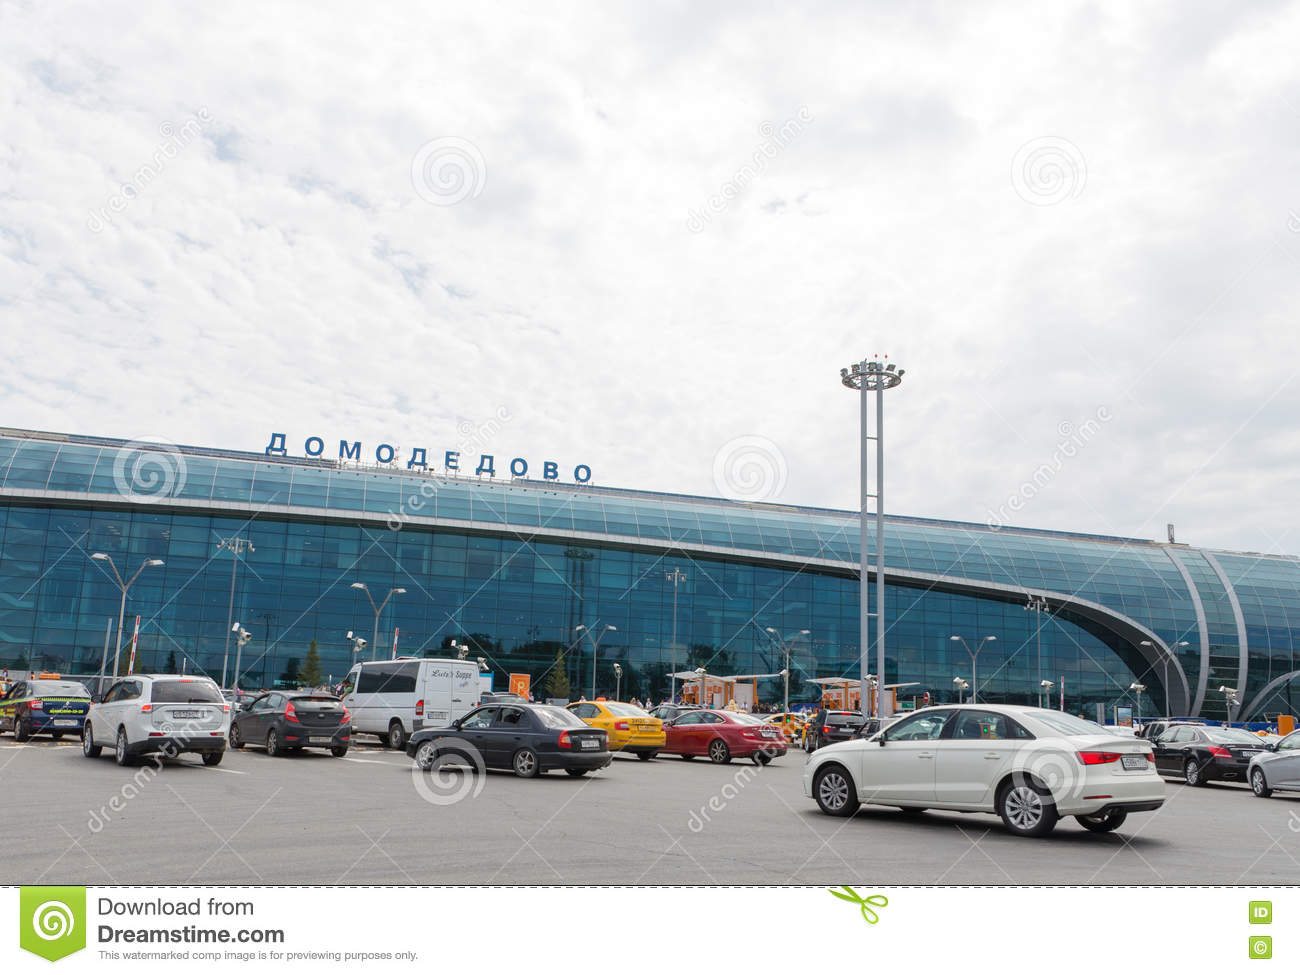 Where in Domodedovo there is cheap parking 13